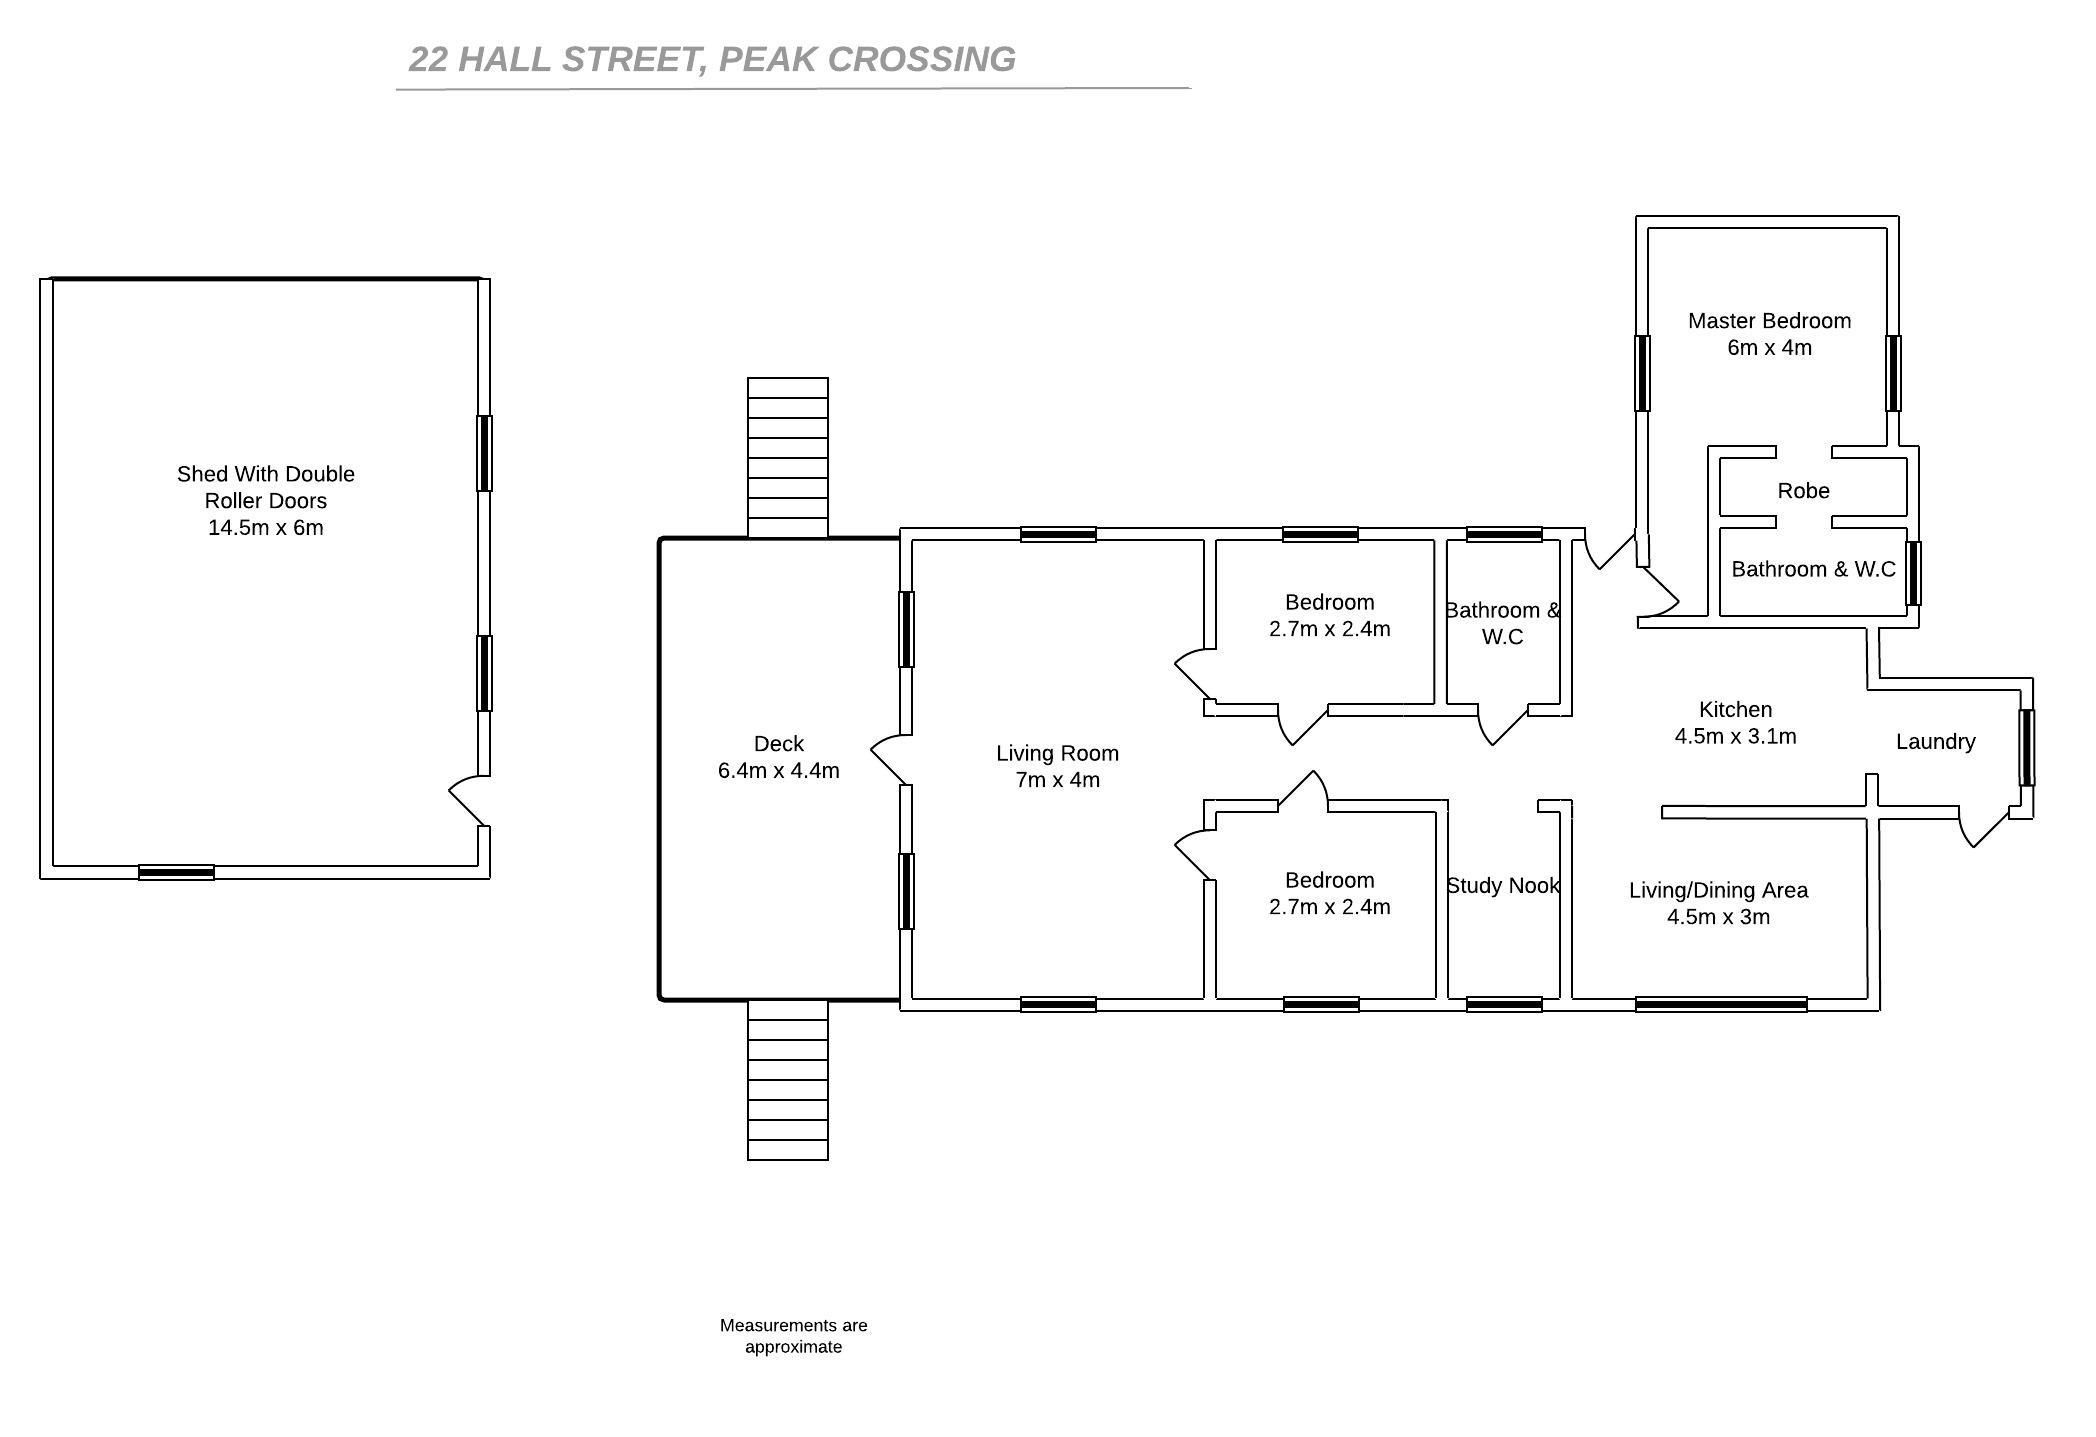 22 Hall Street, Peak Crossing